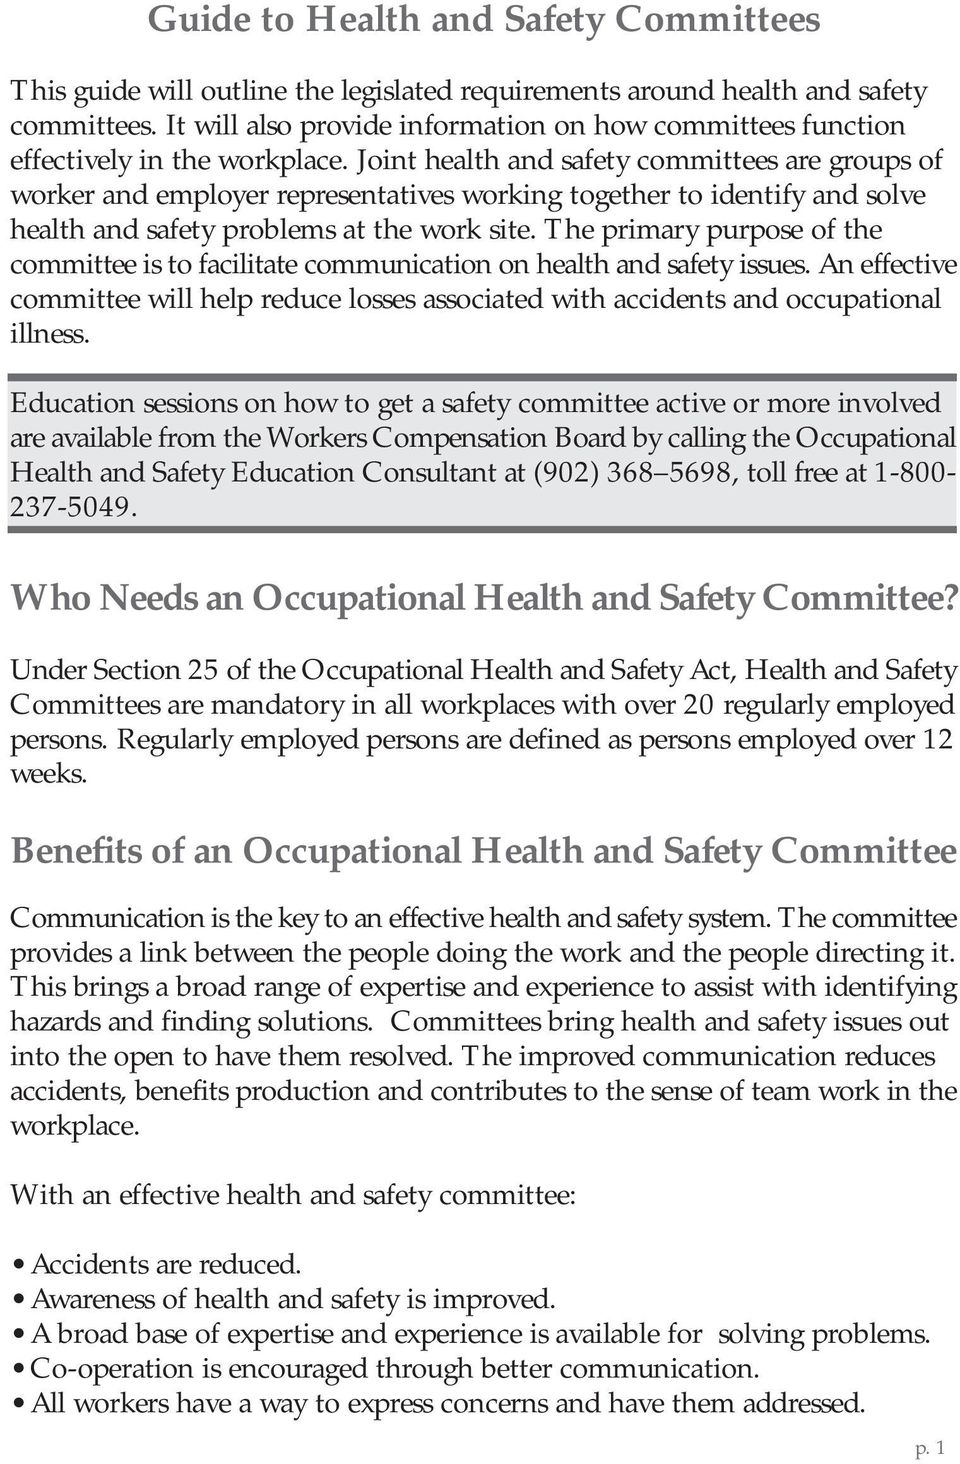 Joint health and safety committees are groups of worker and employer representatives working together to identify and solve health and safety problems at the work site.